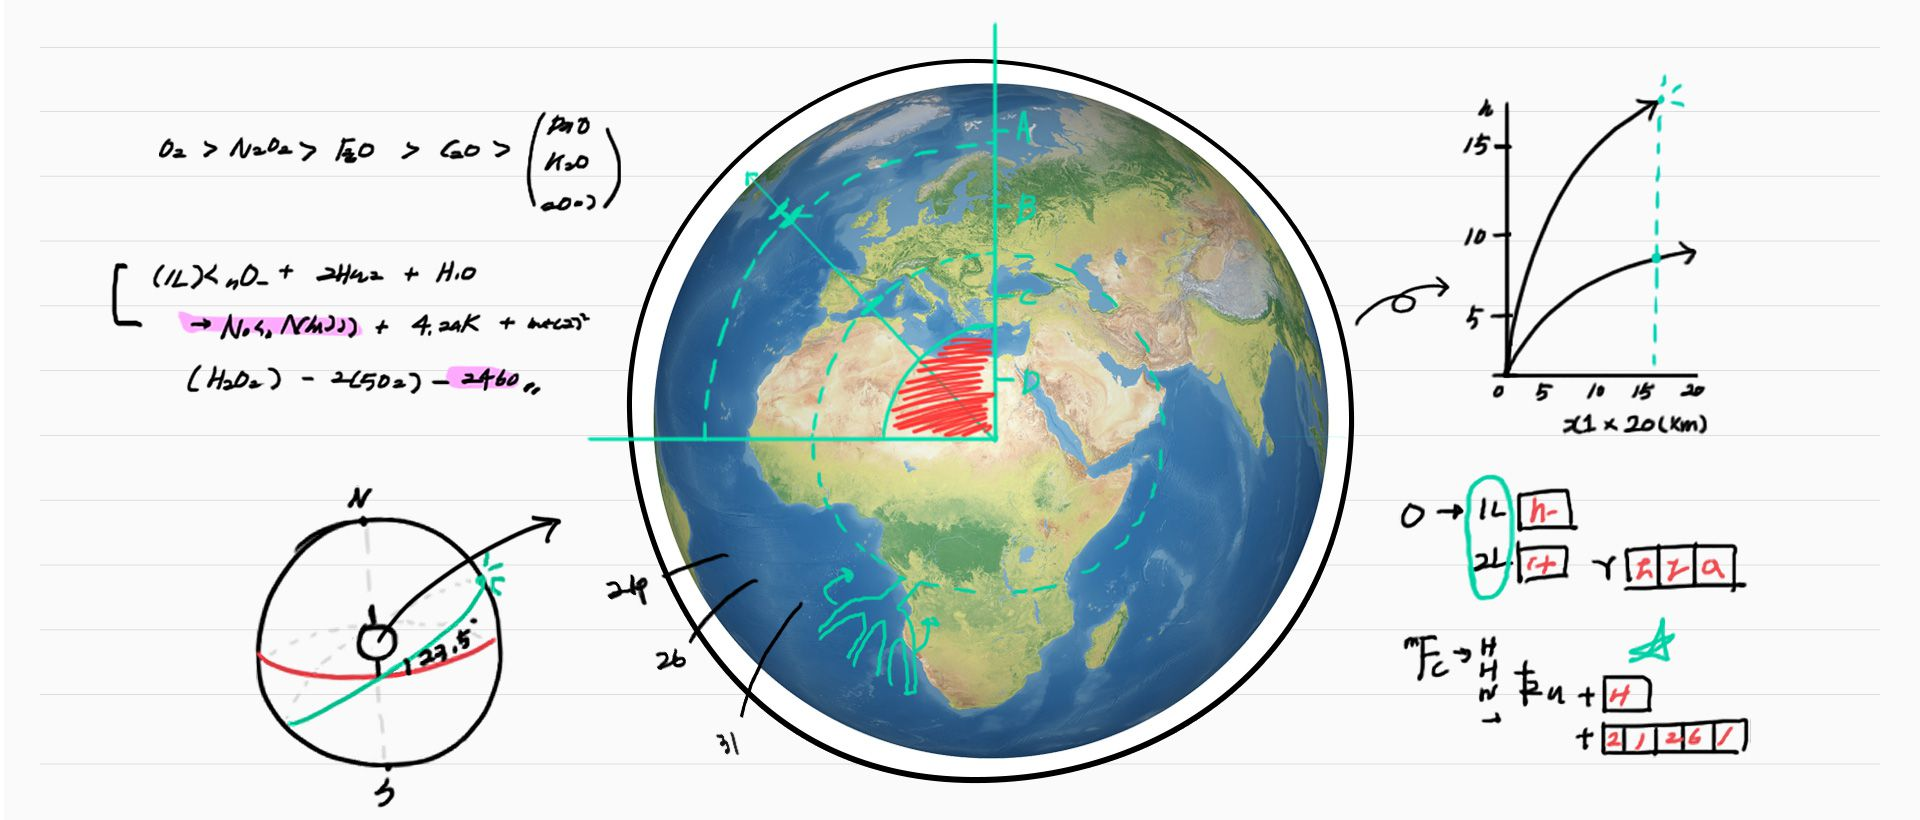 Illustrated image of math notes surrounding a picture of a globe.